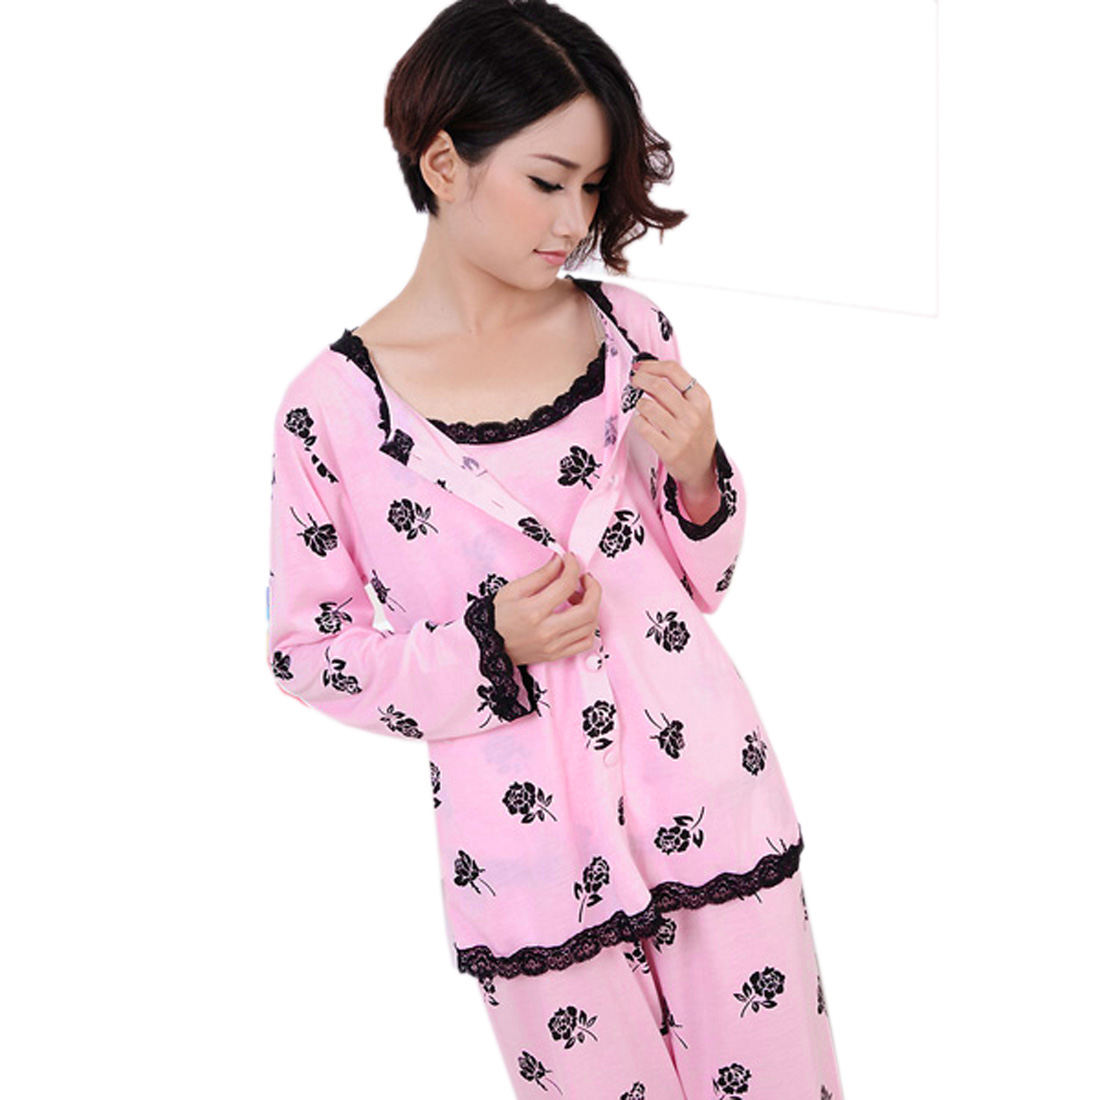 Compare Prices on 3 Piece Pajamas Women- Online Shopping/Buy Low ...